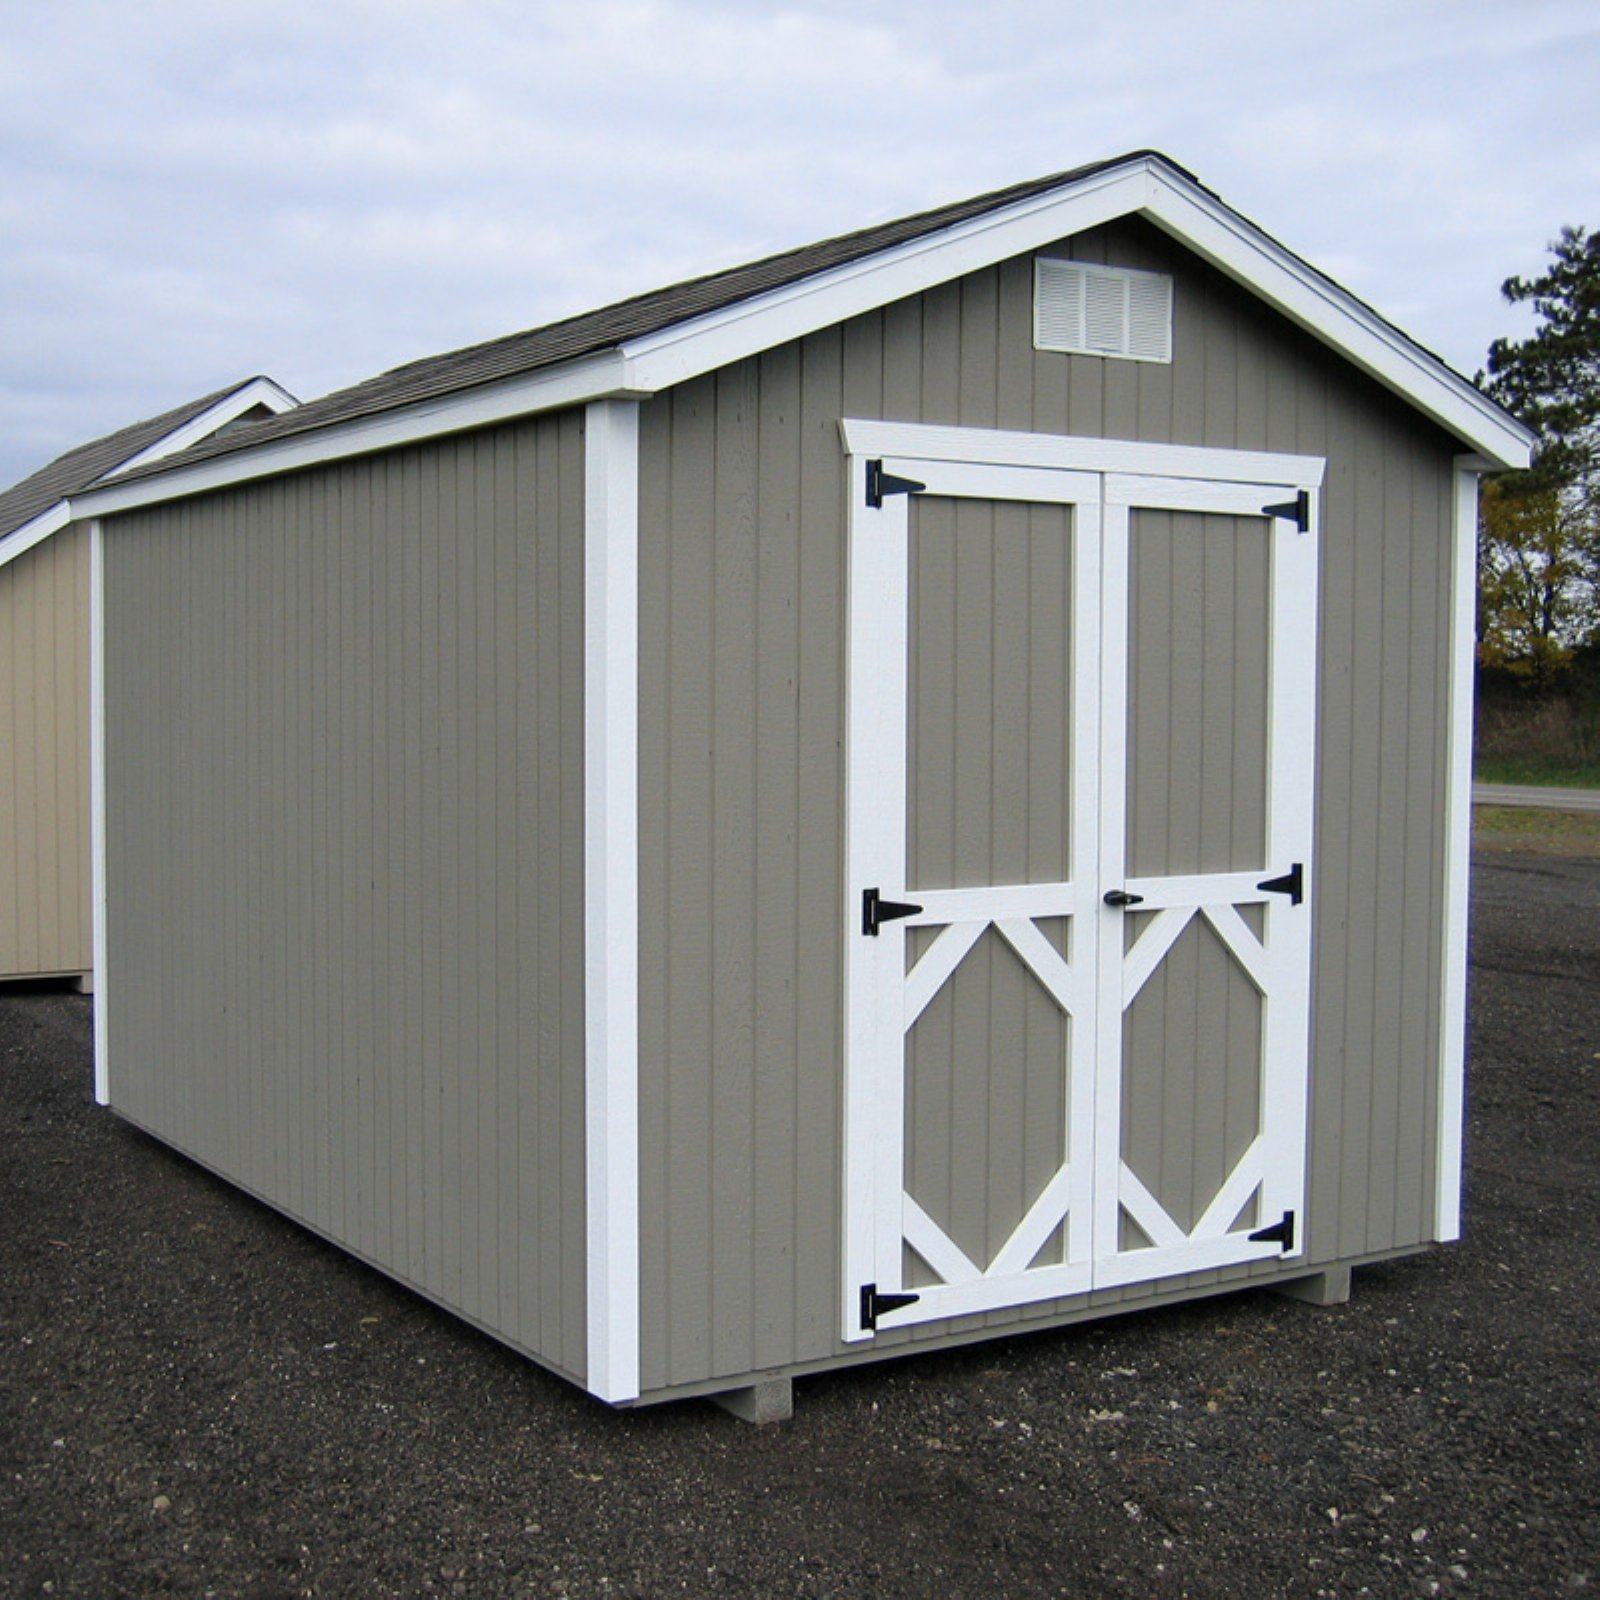 Little Cottage 16 x 12 ft. Classic Wood Gable Panelized Storage Shed